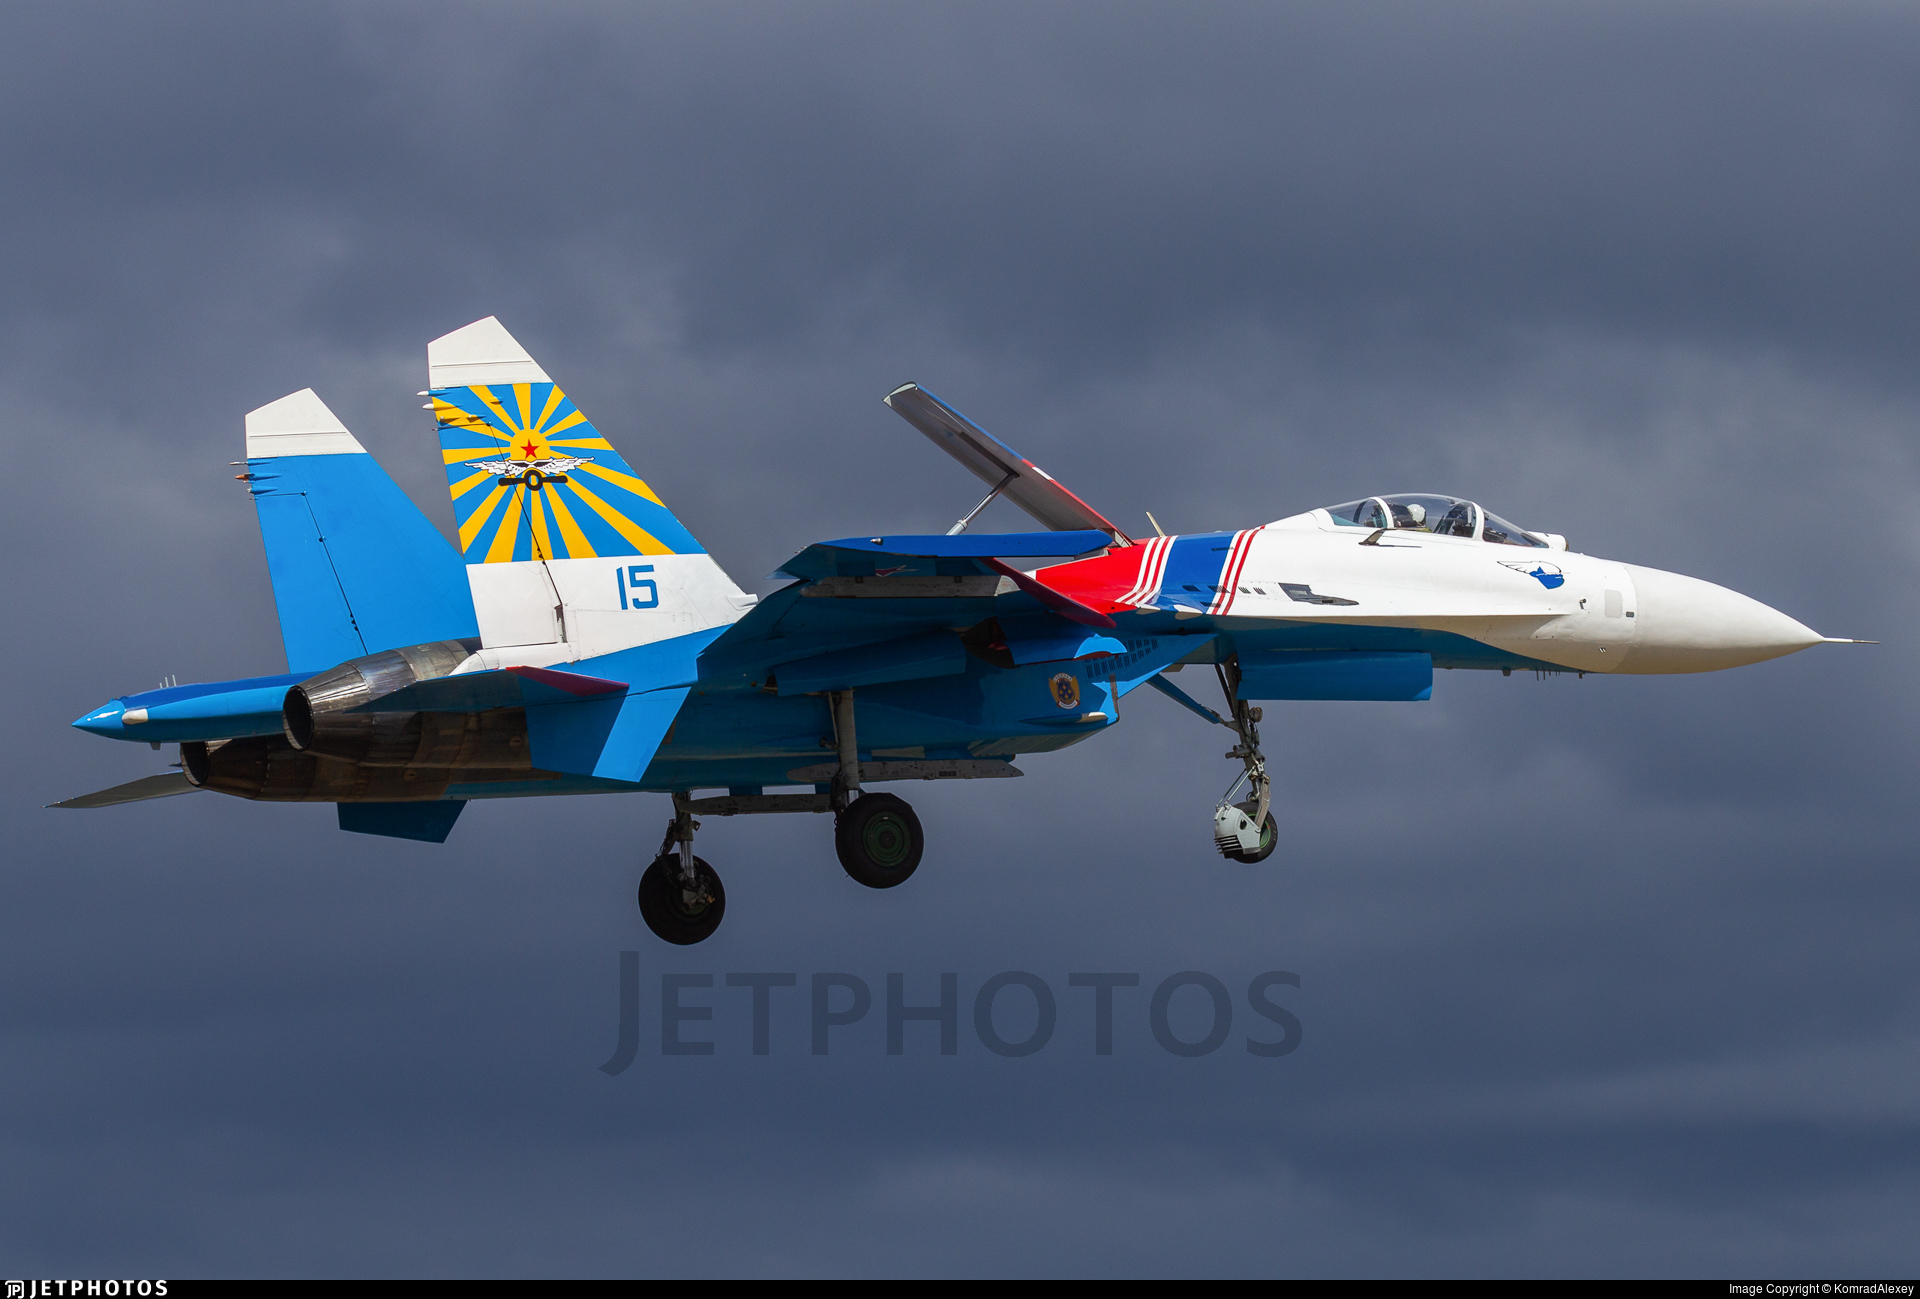 15 - Sukhoi Su-27 Flanker - Russia - Air Force